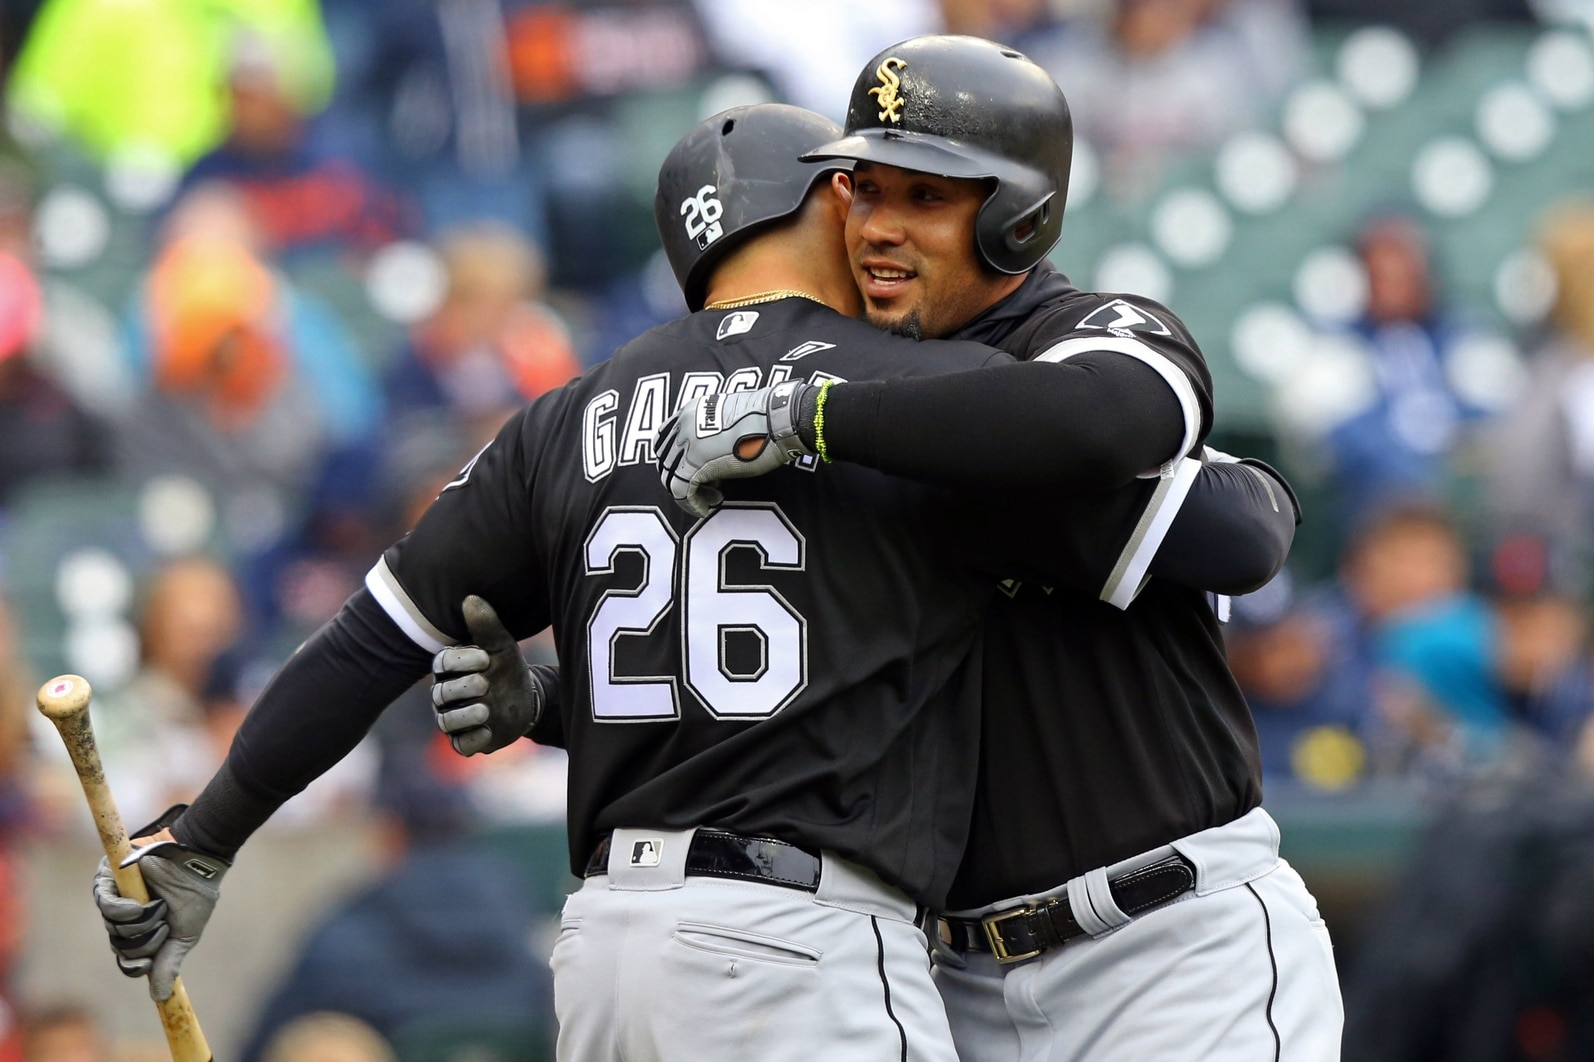 Apr 29, 2017; Detroit, MI, USA; Chicago White Sox first baseman Jose Abreu (right) hugs right fielder Avisail Garcia (26) after hitting a home run against the Detroit Tigers in the third inning at Comerica Park. Mandatory Credit: Aaron Doster-USA TODAY